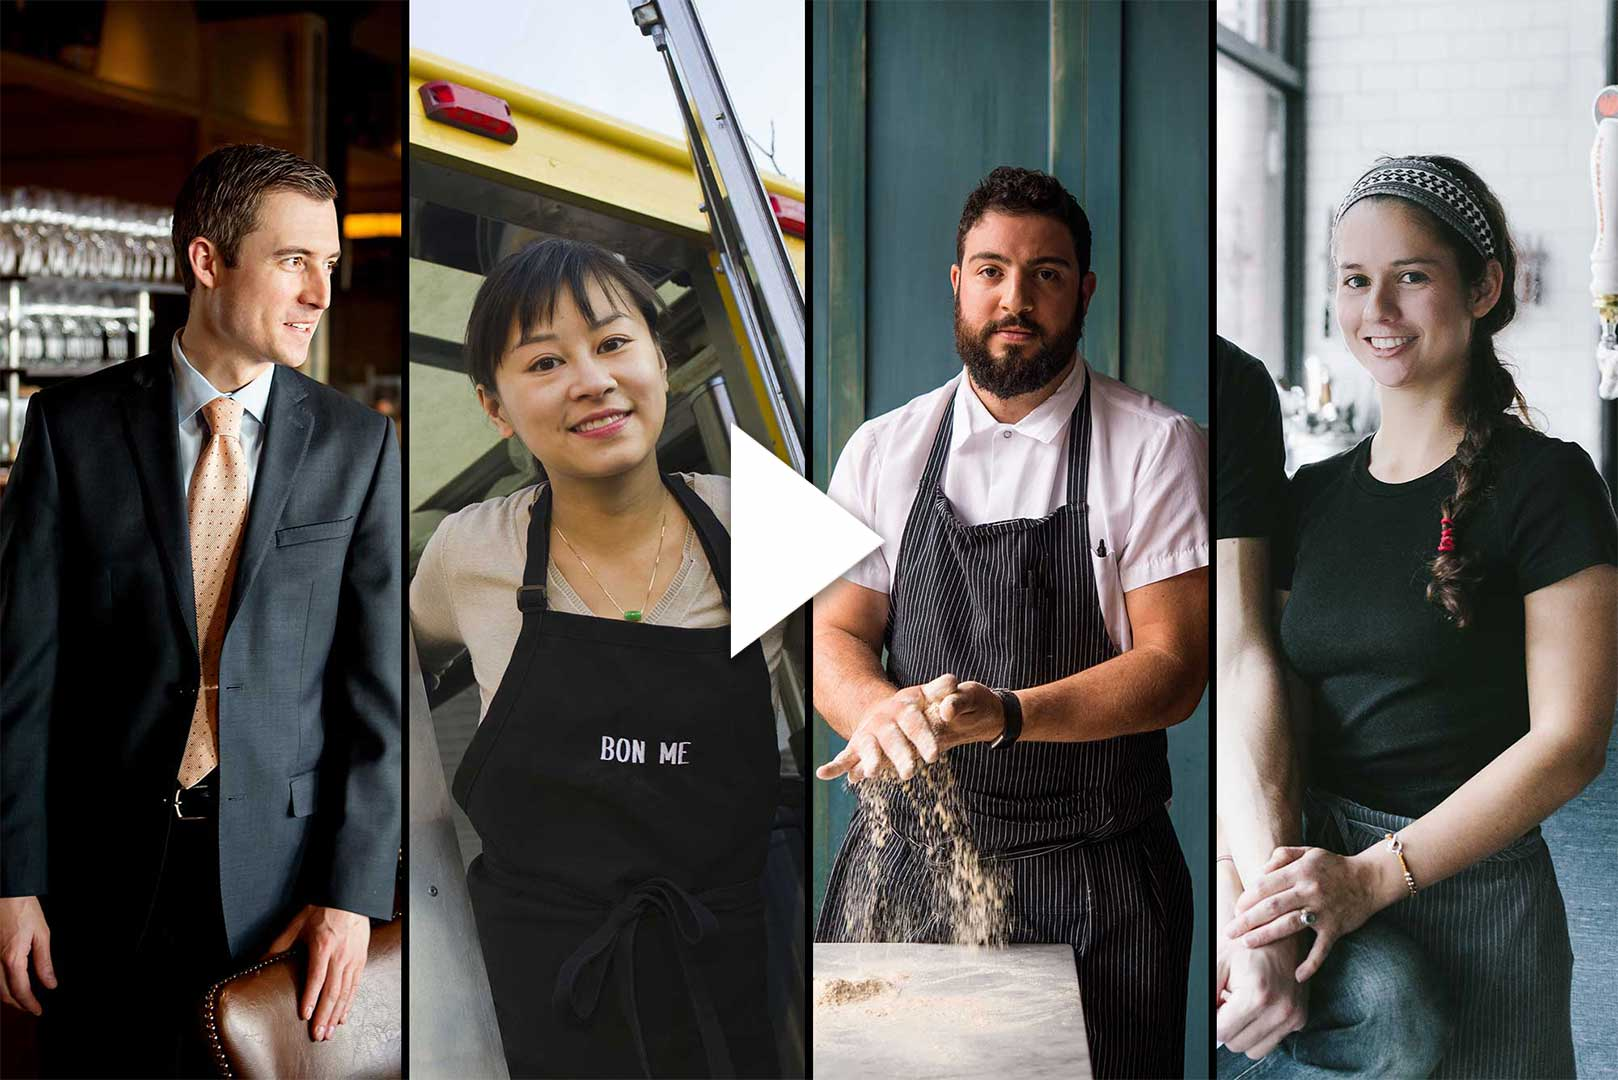 Composite image of Boston restauranteurs and alumni: Andrew Holden (SHA'04), Ali Fong (CAS'01), Michael Lombardi, and Fernanda Tapia (MET'09). Video play button is overlayed.